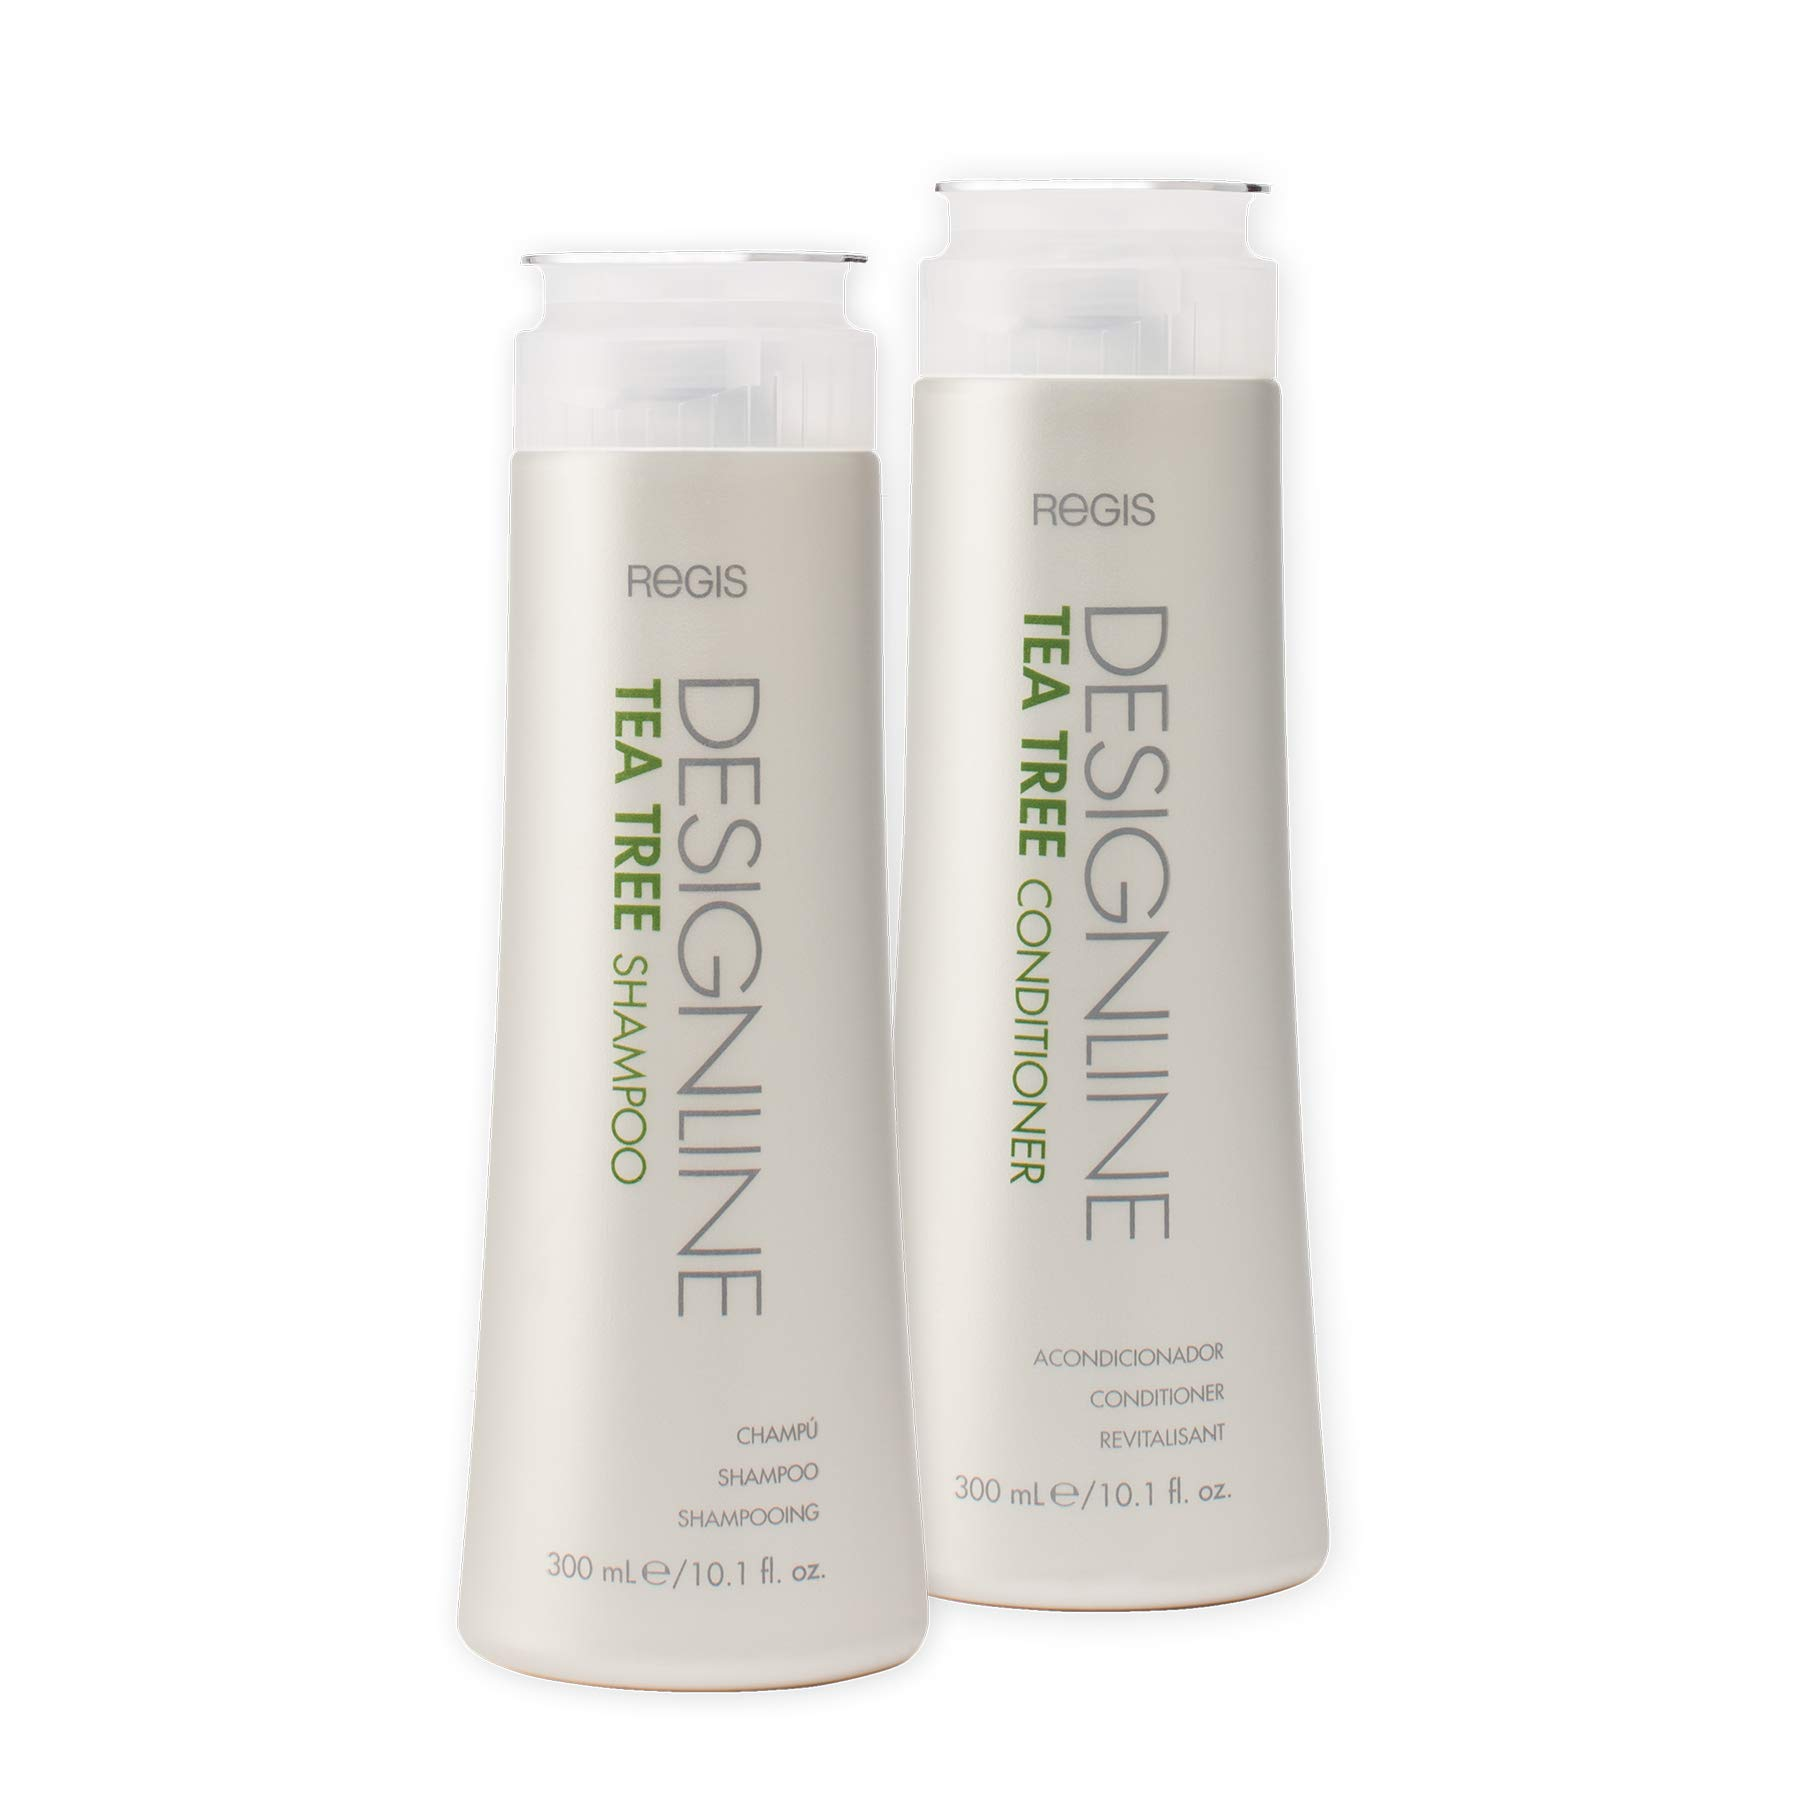 Tea Tree Shampoo and Conditioner Duo Pack, 10.1 oz - Regis DESIGNLINE - Helps Invigorate and Rehydrate Dry, Sensitive Scalps and Balances Hair and Scalp Oil for Shine, Softness, and Manageability by DESIGNLINE